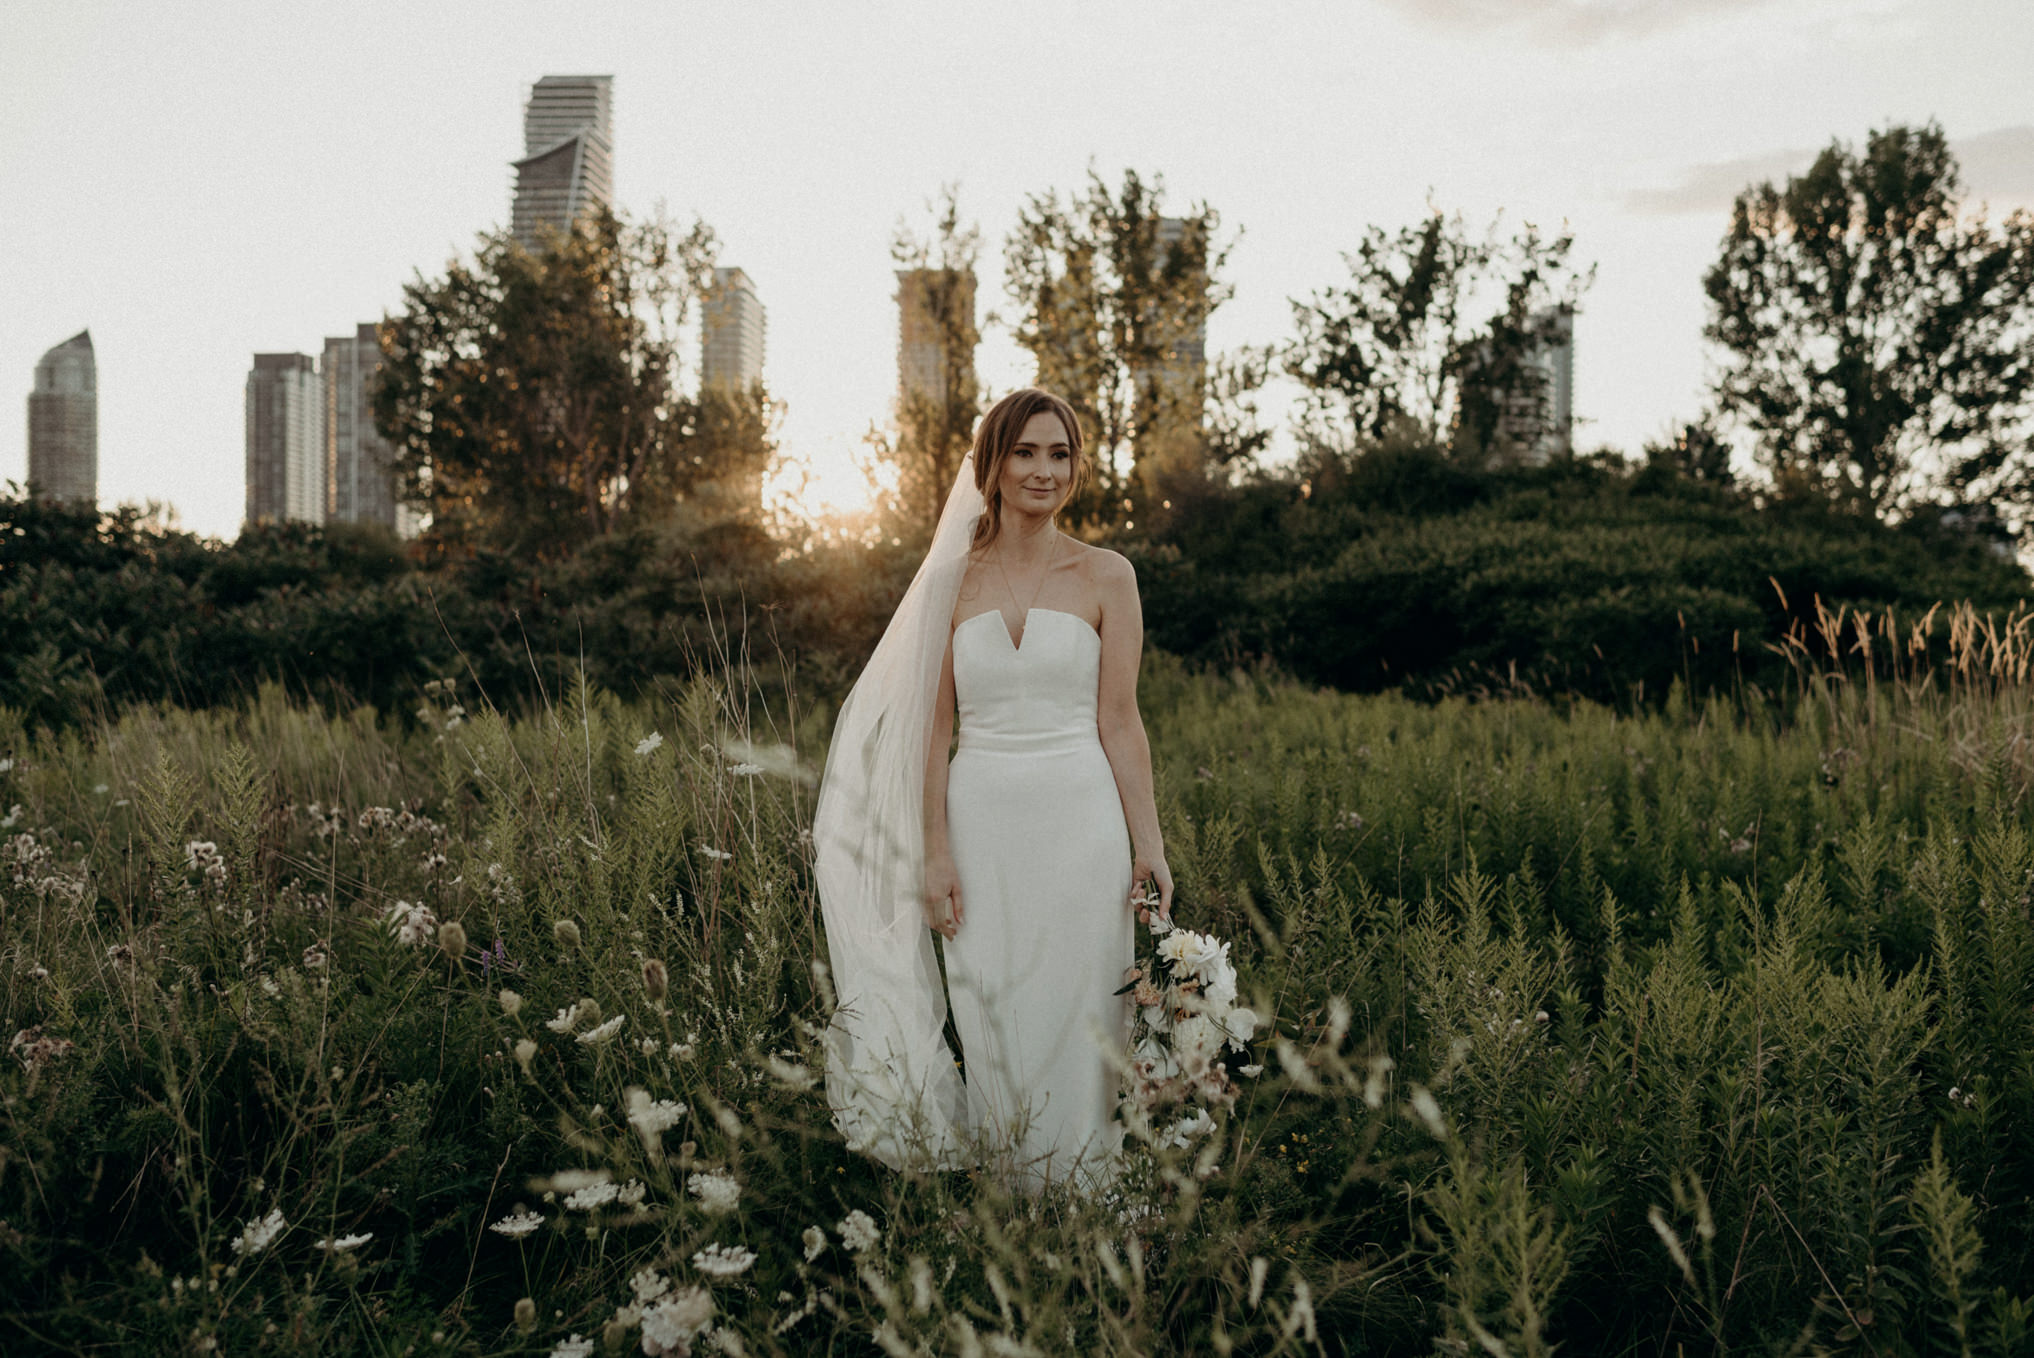 bride with sunset and condo buildings in background at Humber Bay